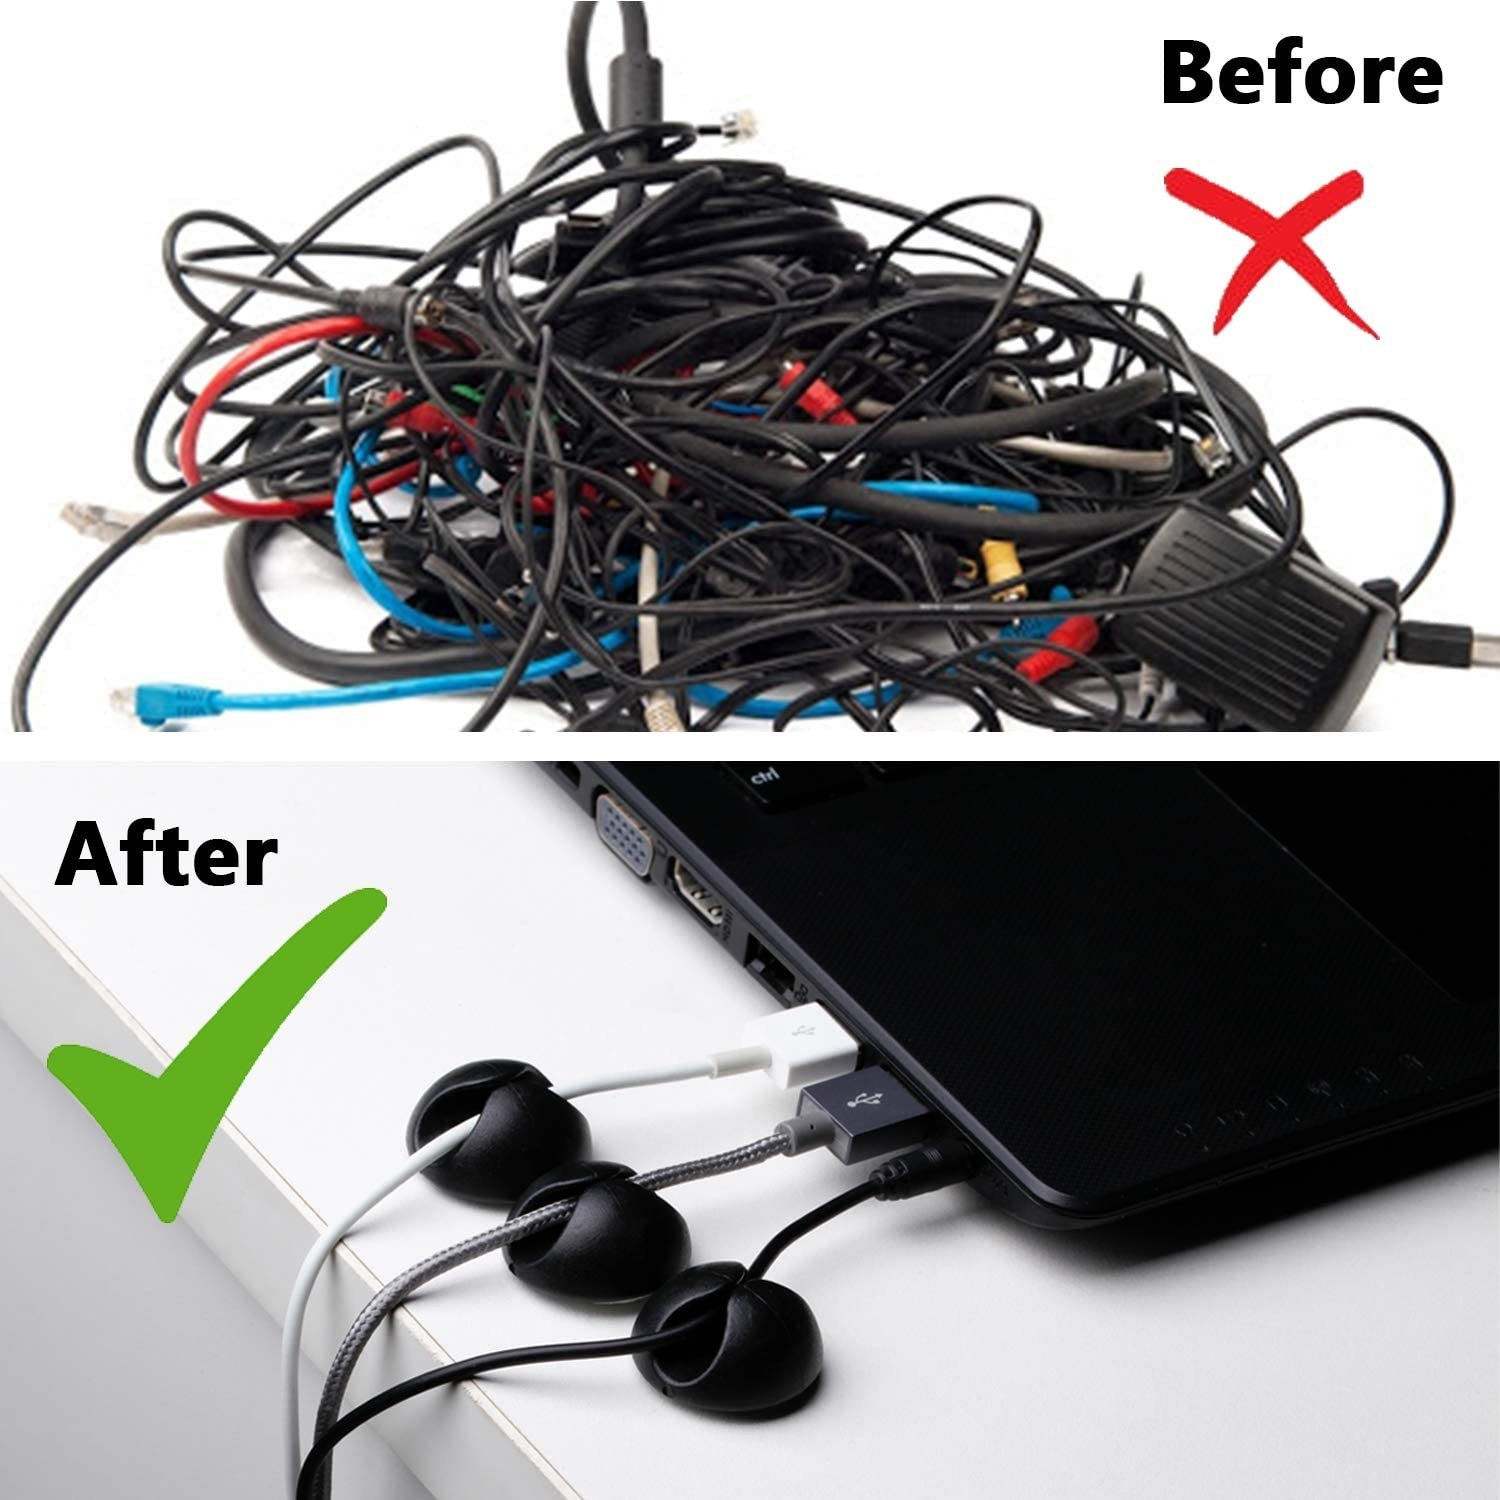 A before and after photo showing that the clips keep cables neat and organized